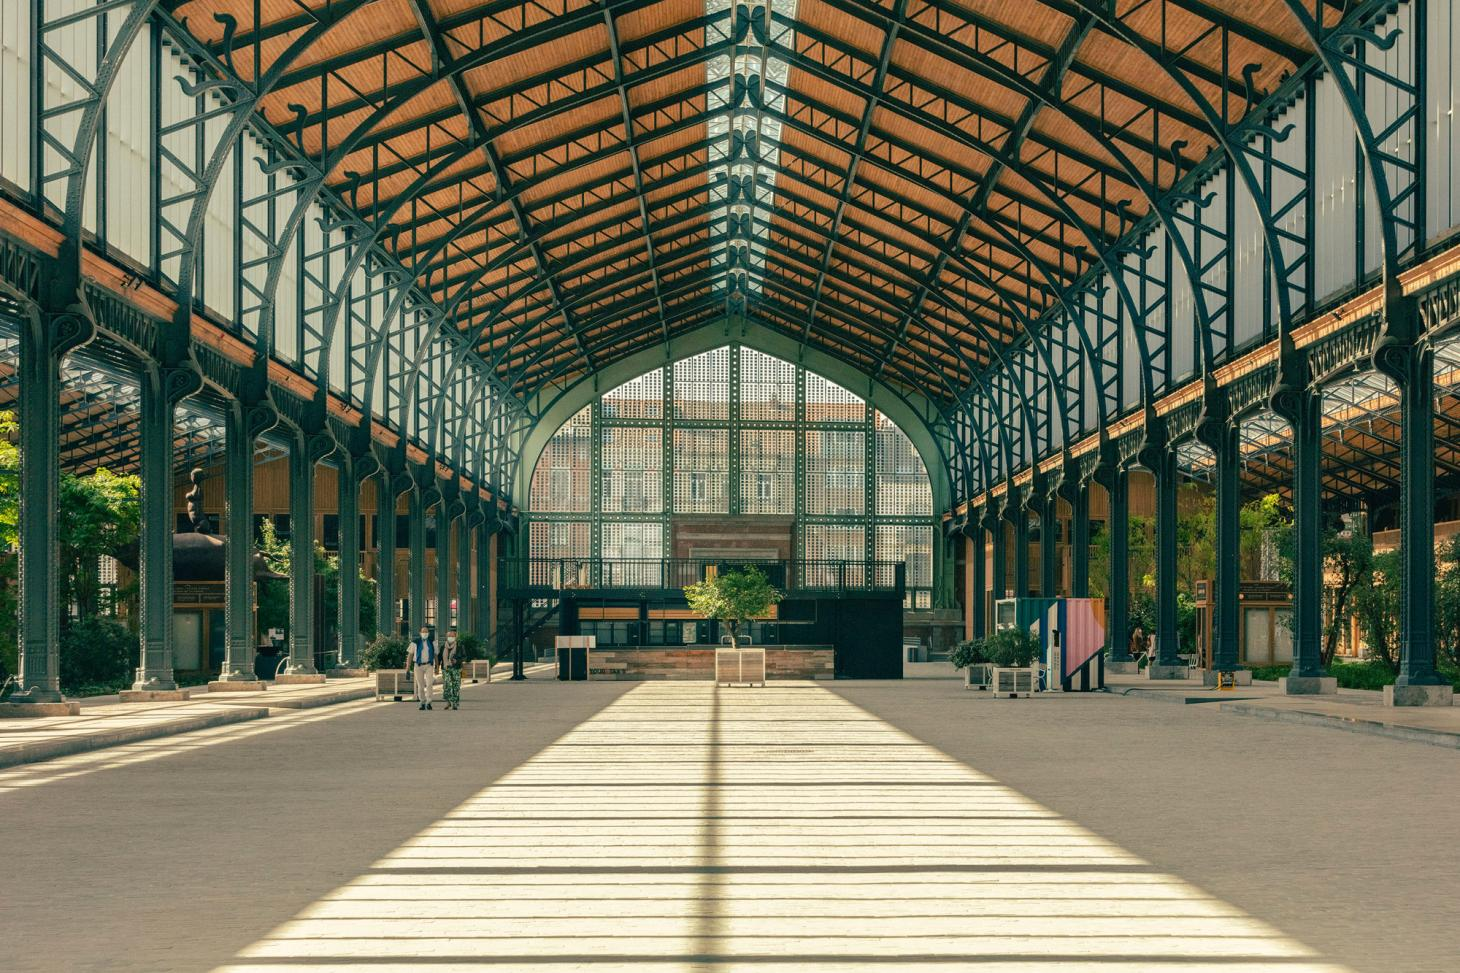 renovated industrial architecture at gare maritime in Brussels